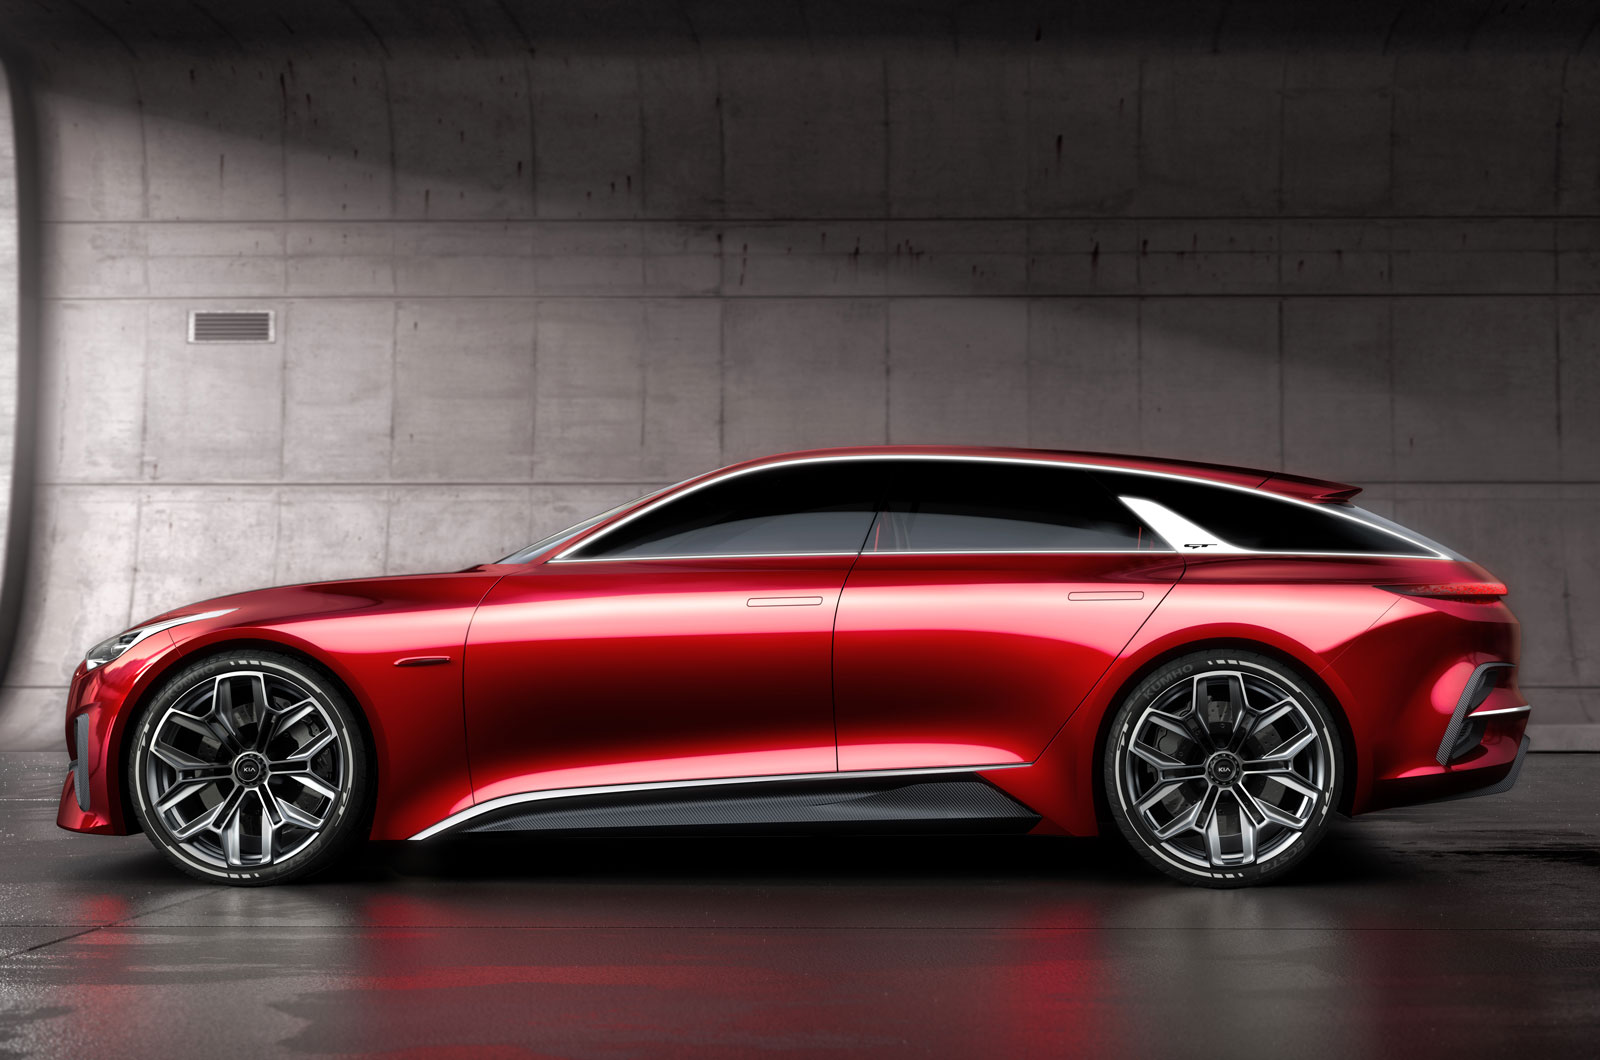 Frankfurt 2017 Preview: Official photos of Kia Proceed Concept released